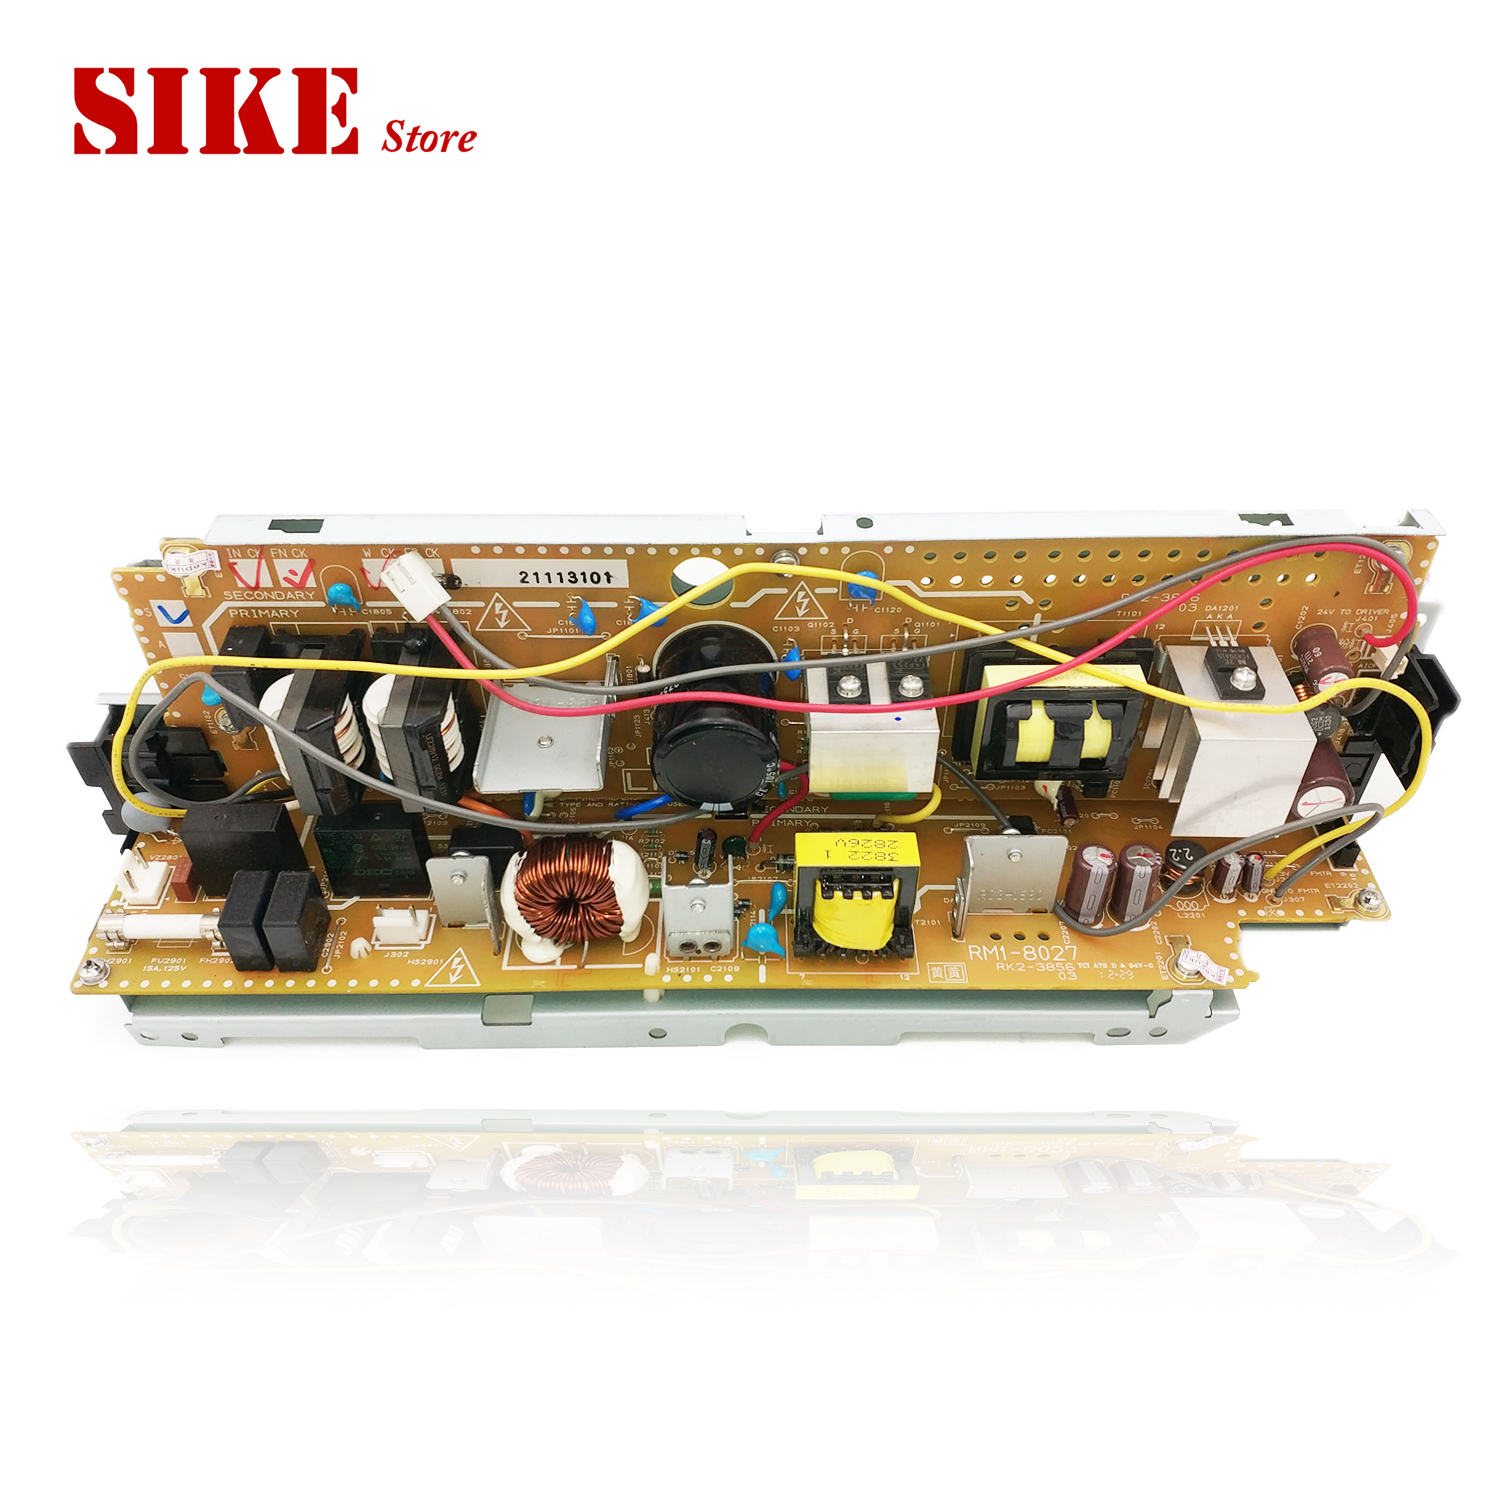 RM1-8035 RM1-8037 Engine Control Power Board For HP M351 M451 M351a M451nw M451dn M451dw 351 Voltage Power Supply Board RM1-8027RM1-8035 RM1-8037 Engine Control Power Board For HP M351 M451 M351a M451nw M451dn M451dw 351 Voltage Power Supply Board RM1-8027